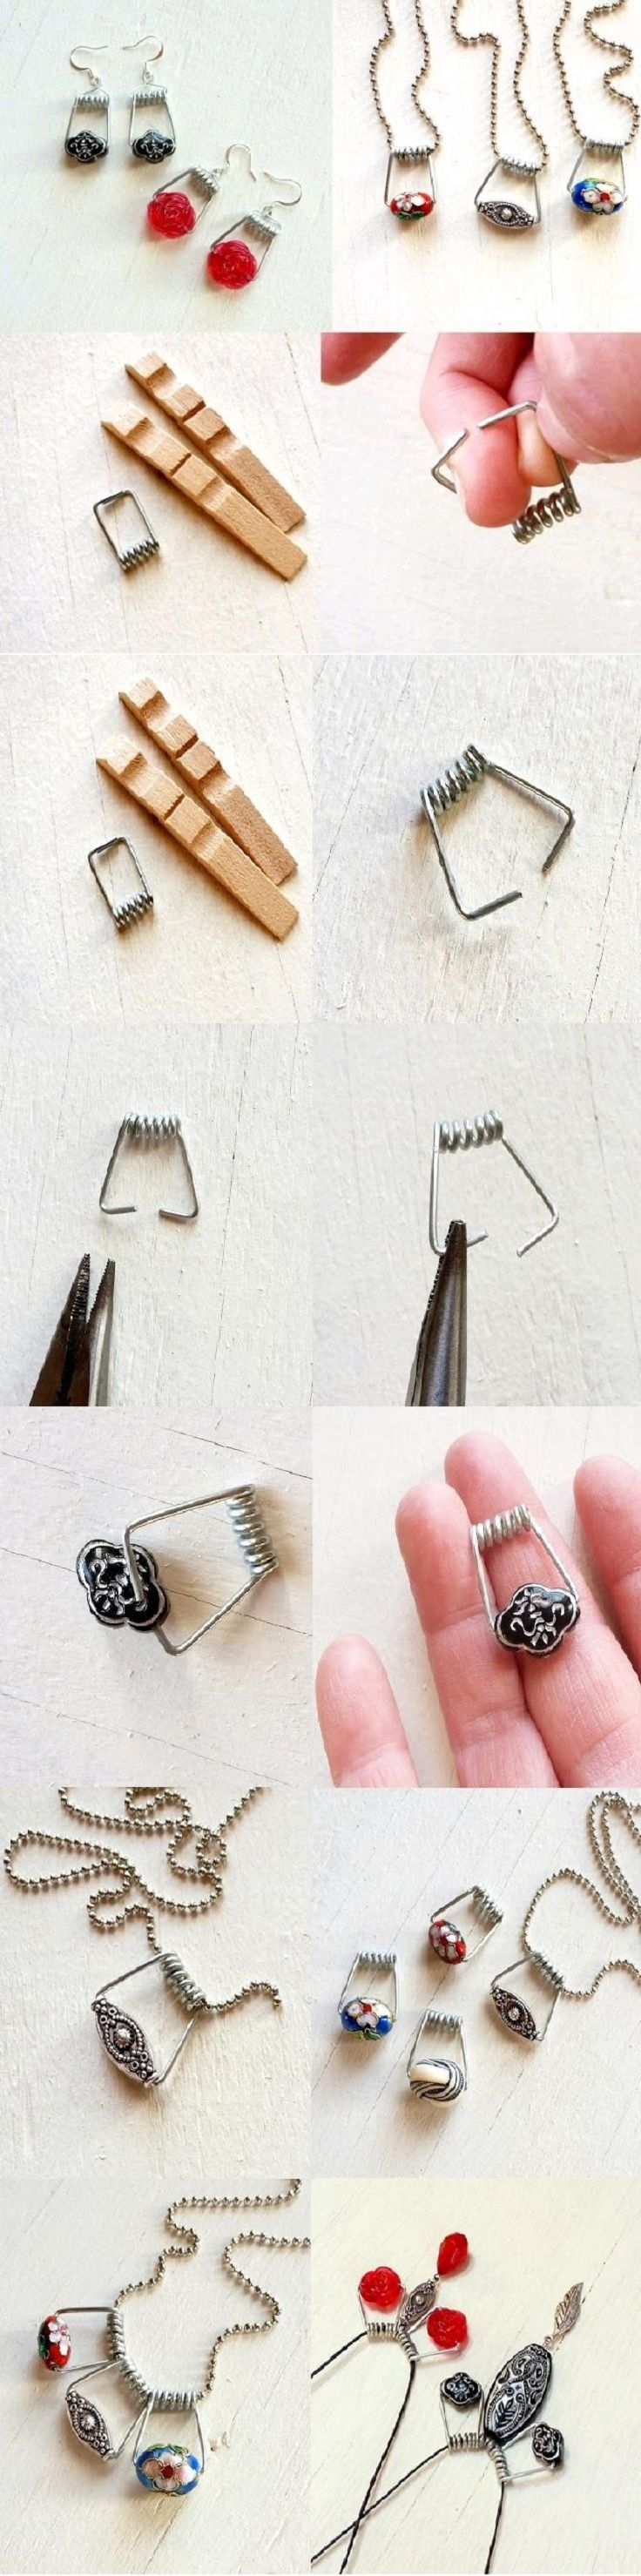 321 best Making Jewelry images on Pinterest